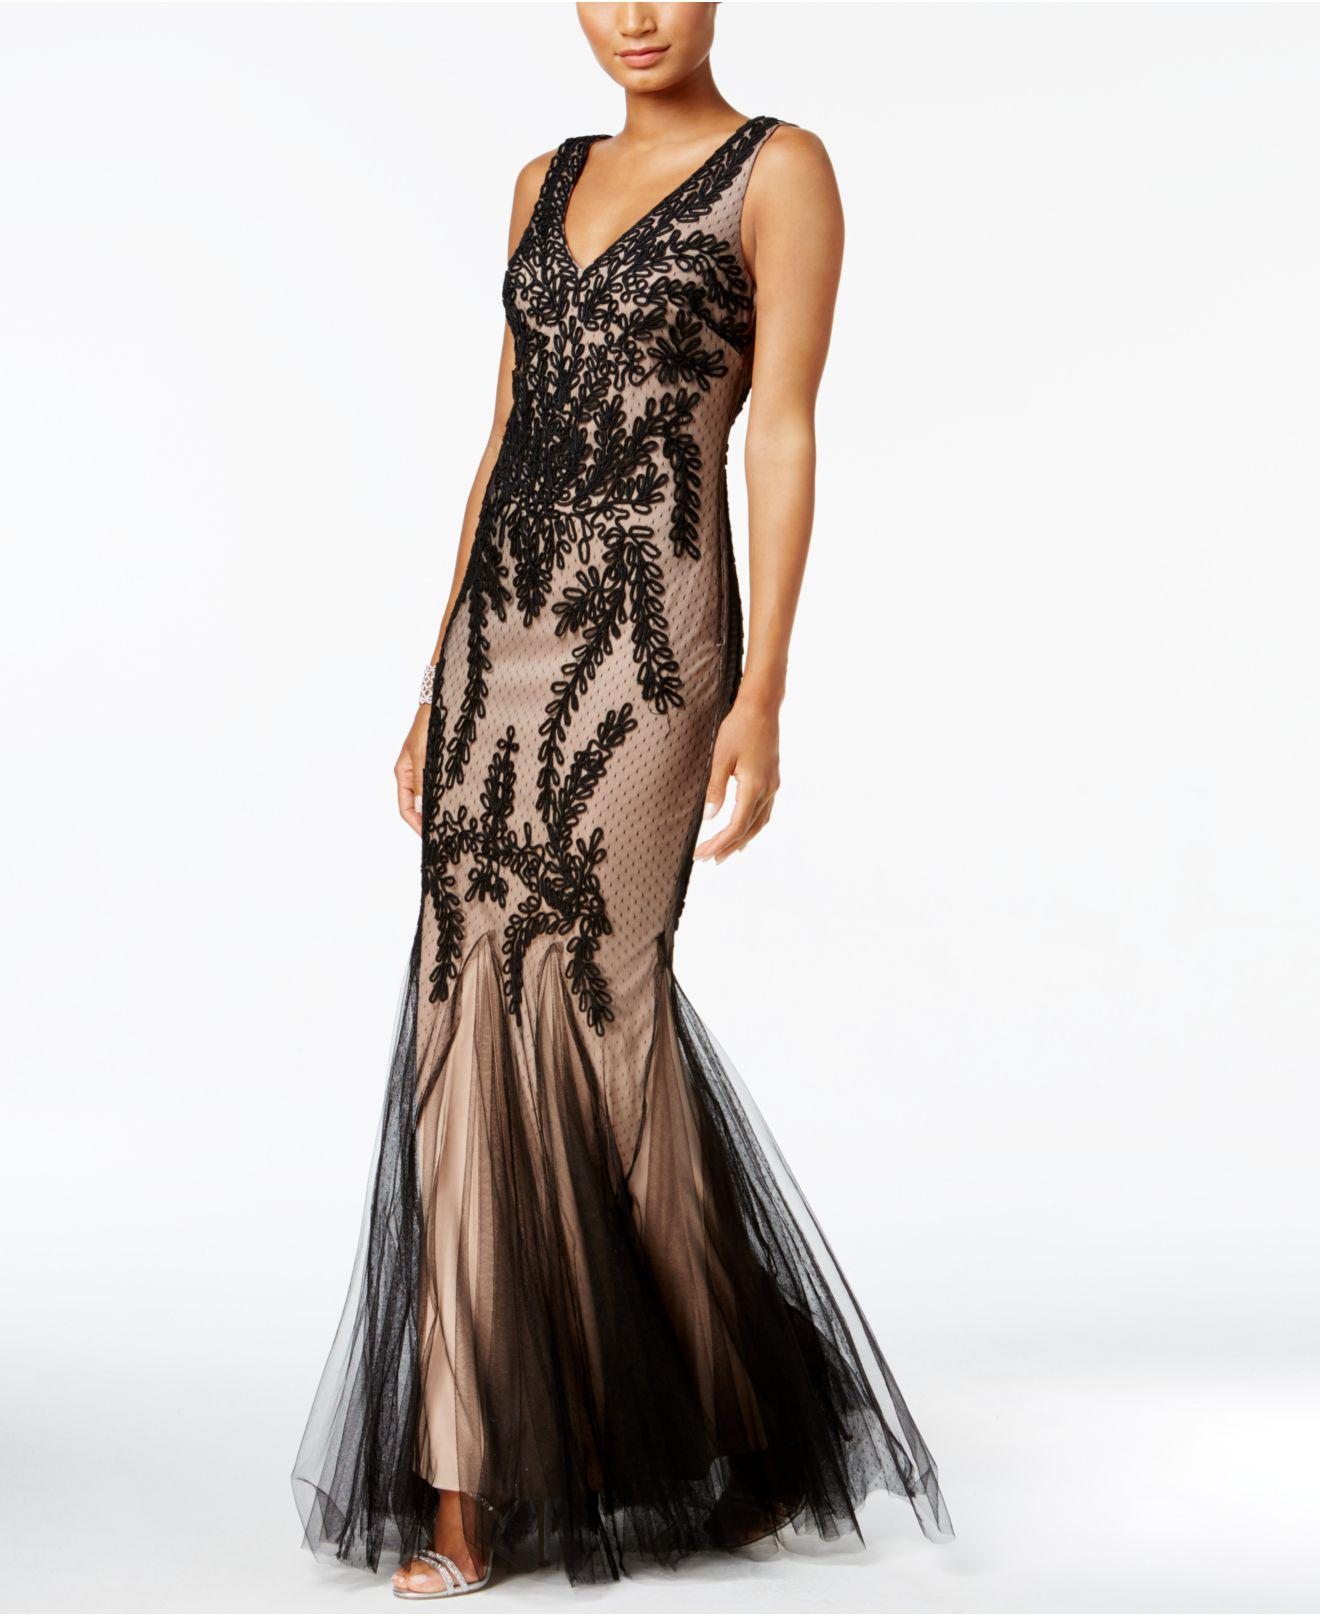 Lyst - Betsy & Adam Soutache Mermaid Gown